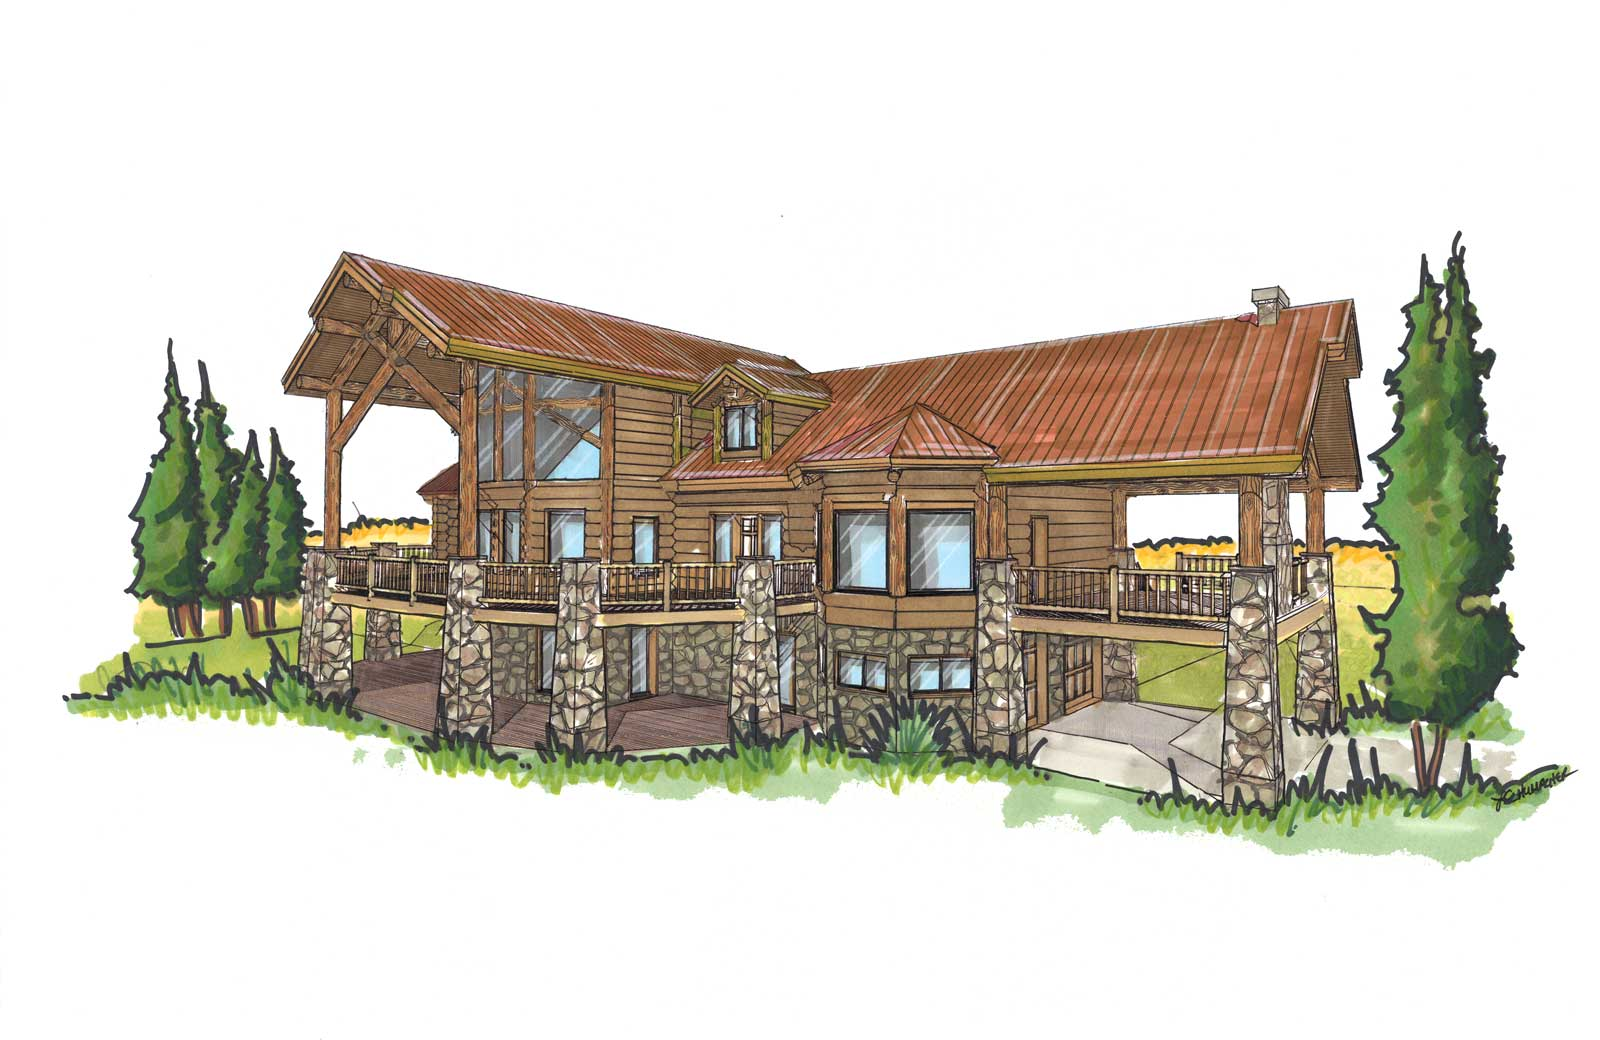 Telluride custom designed log home back right view